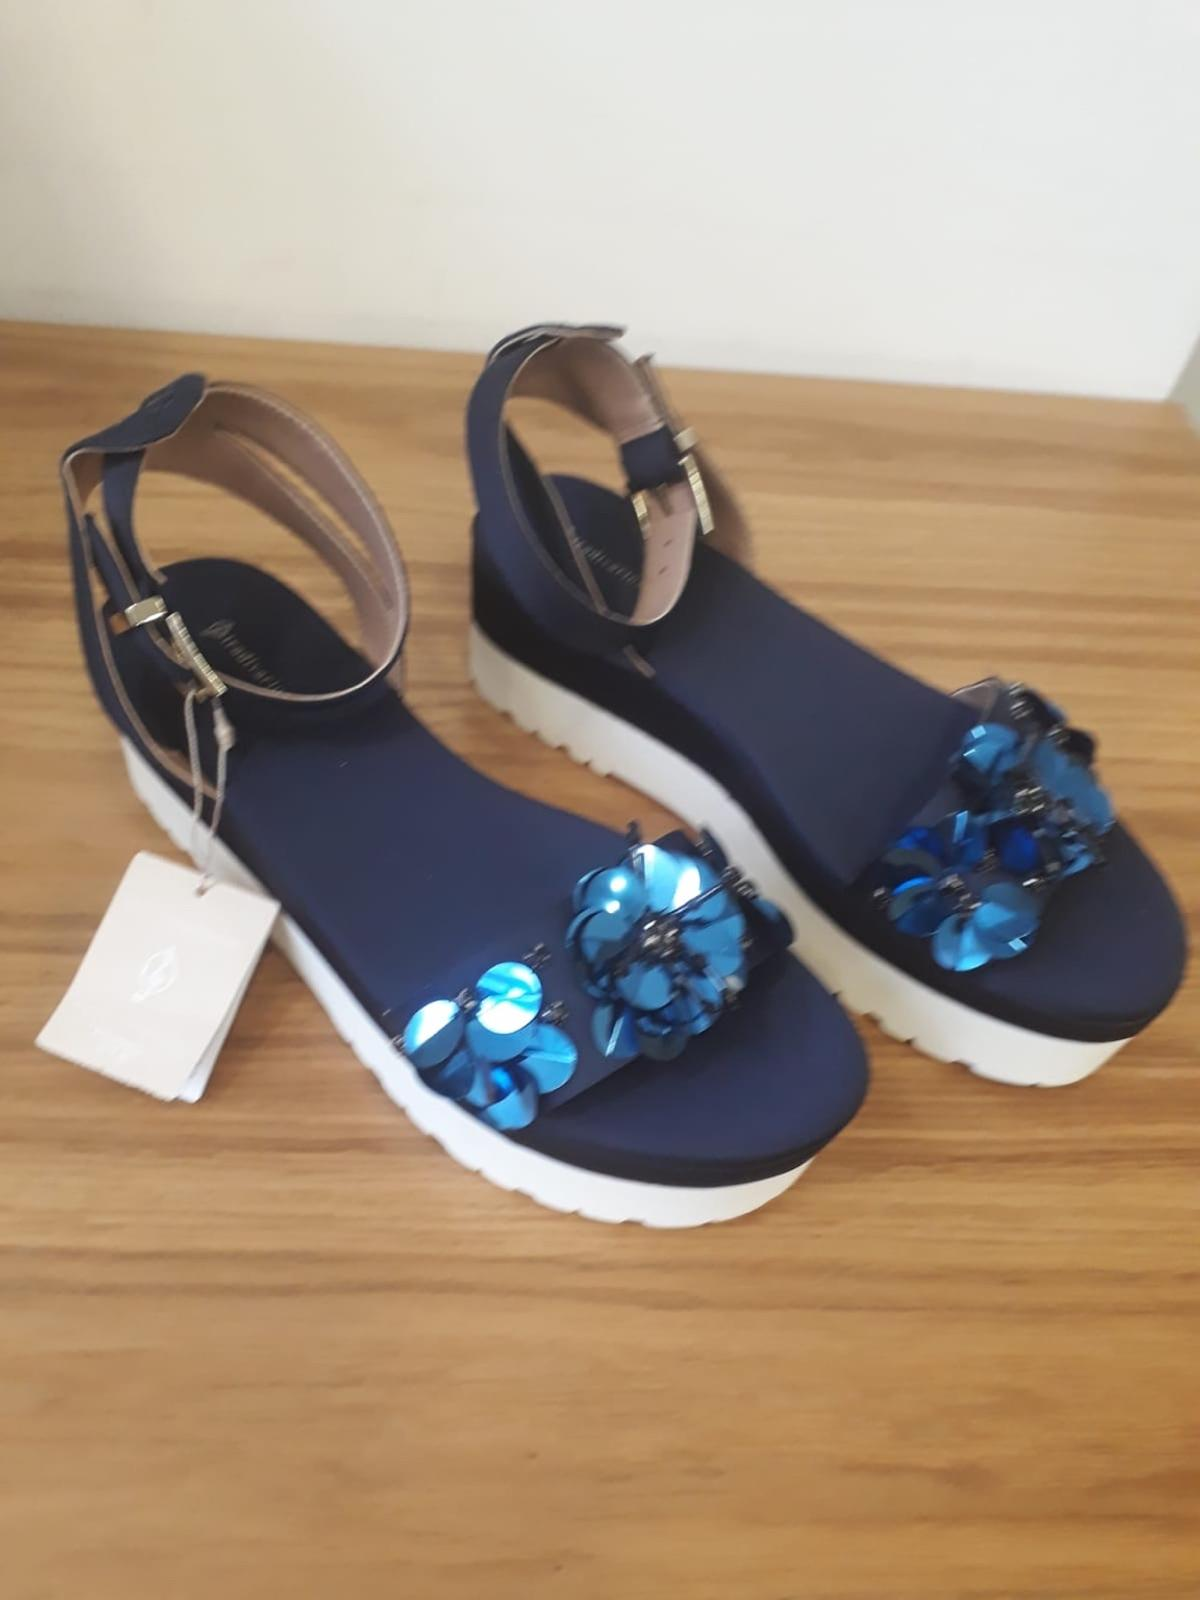 A brand new pair of Stradivarius Navy Sandals with blue sparkle flowers on front. Solid white sole and heel. Size 6 (39). Price £12ono Never worn